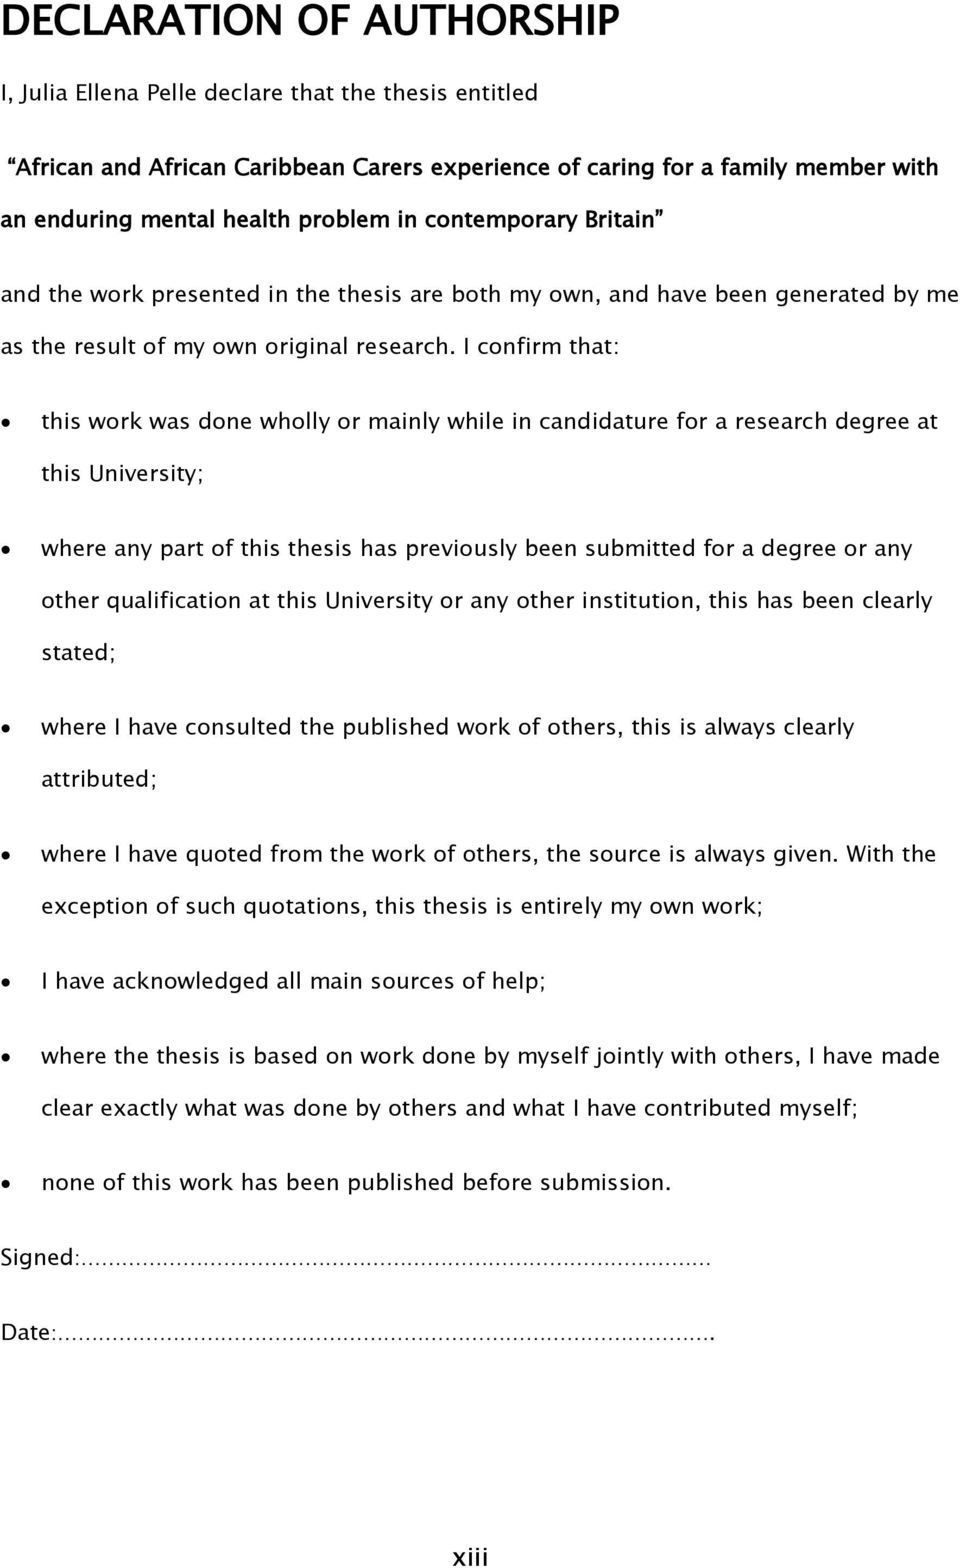 I confirm that: this work was done wholly or mainly while in candidature for a research degree at this University; where any part of this thesis has previously been submitted for a degree or any